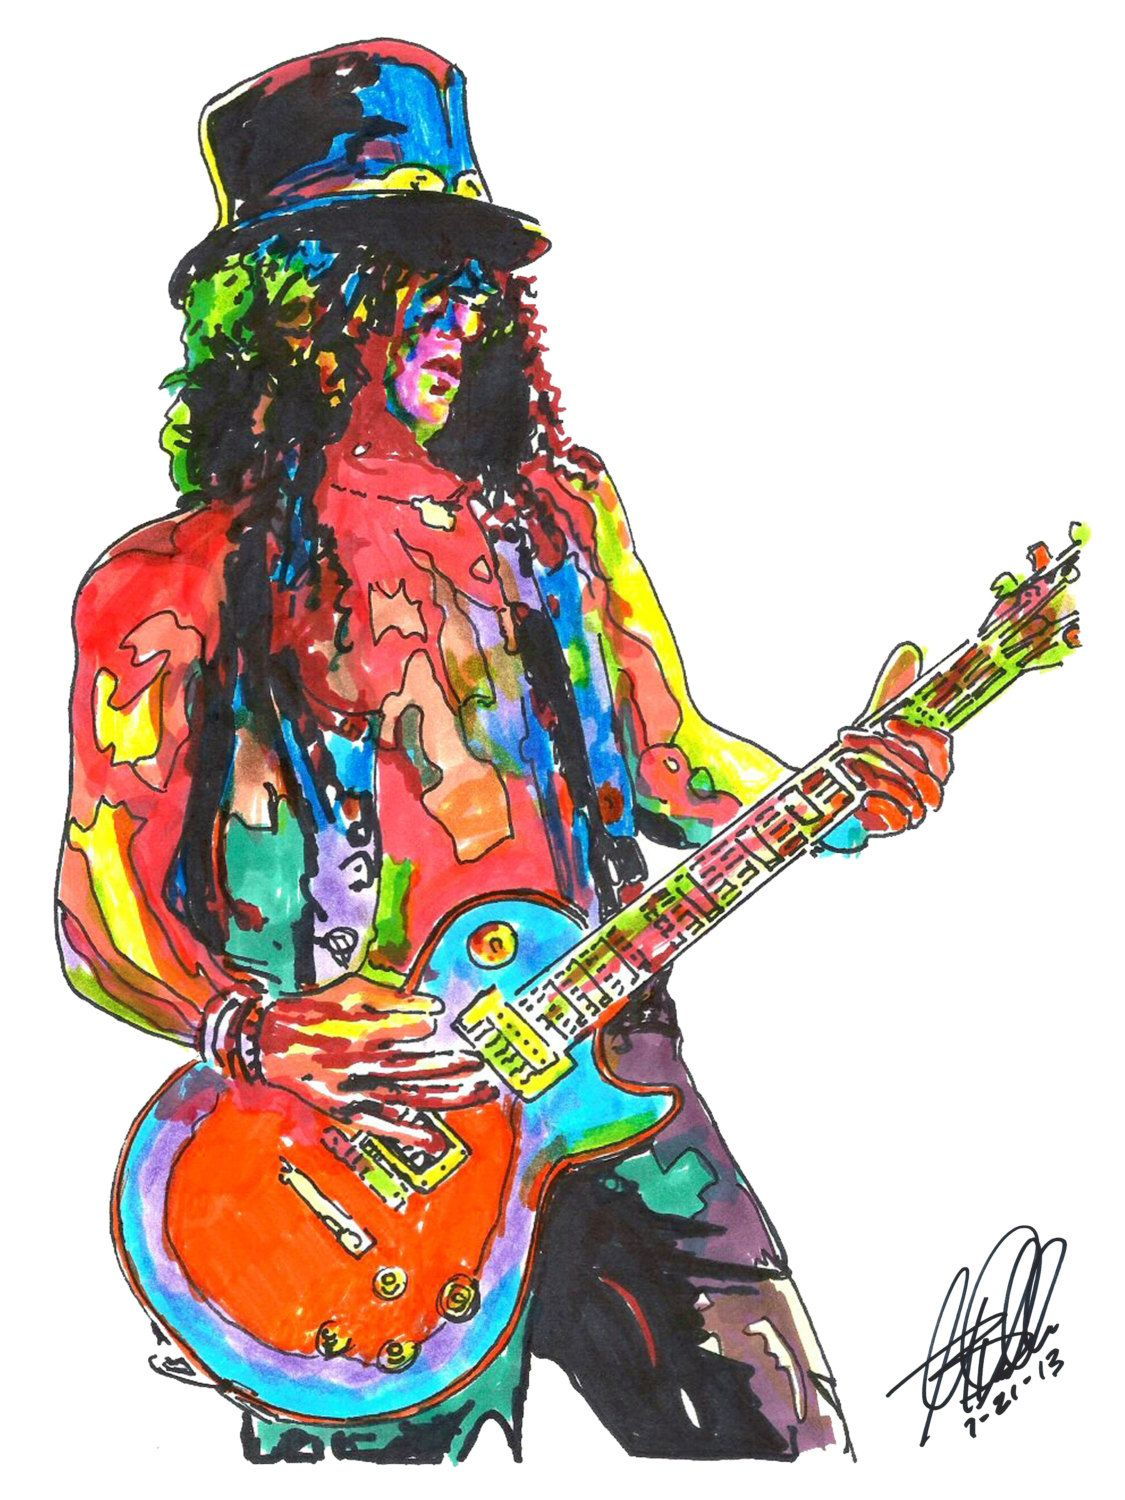 slash guns n 39 roses lead guitar guitarist hard rock poster from original dwg 18 x 24. Black Bedroom Furniture Sets. Home Design Ideas